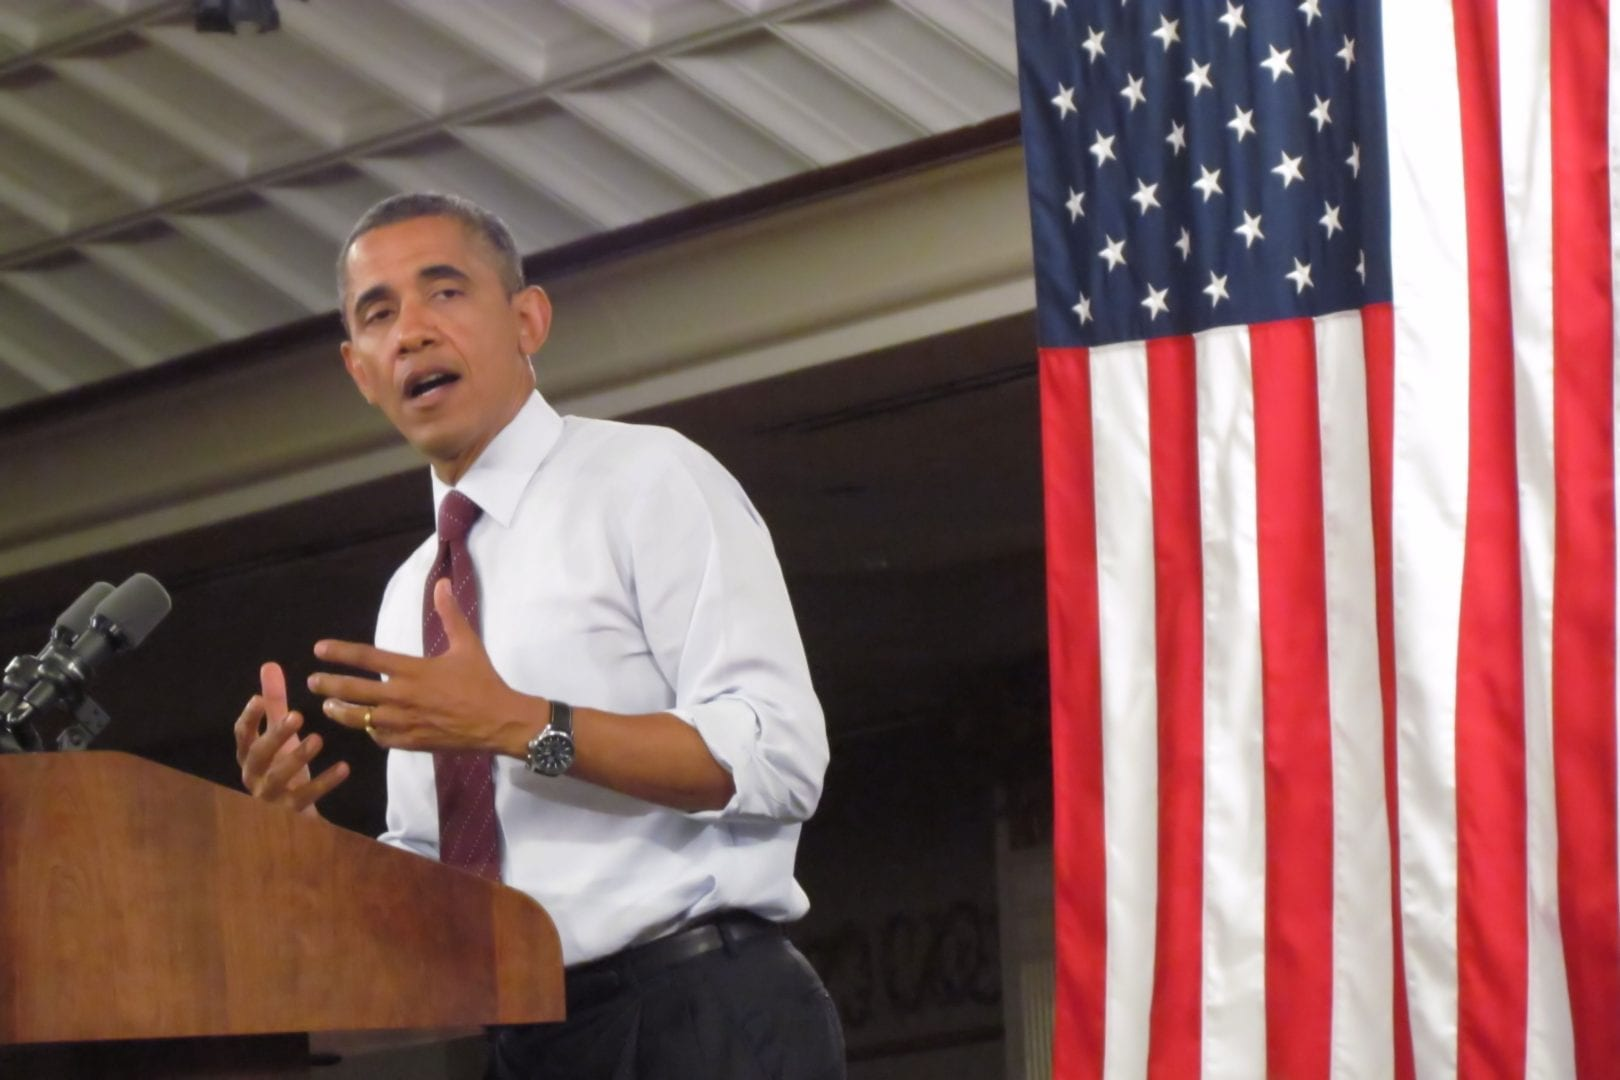 Barrack Obama giving a speech at the podium